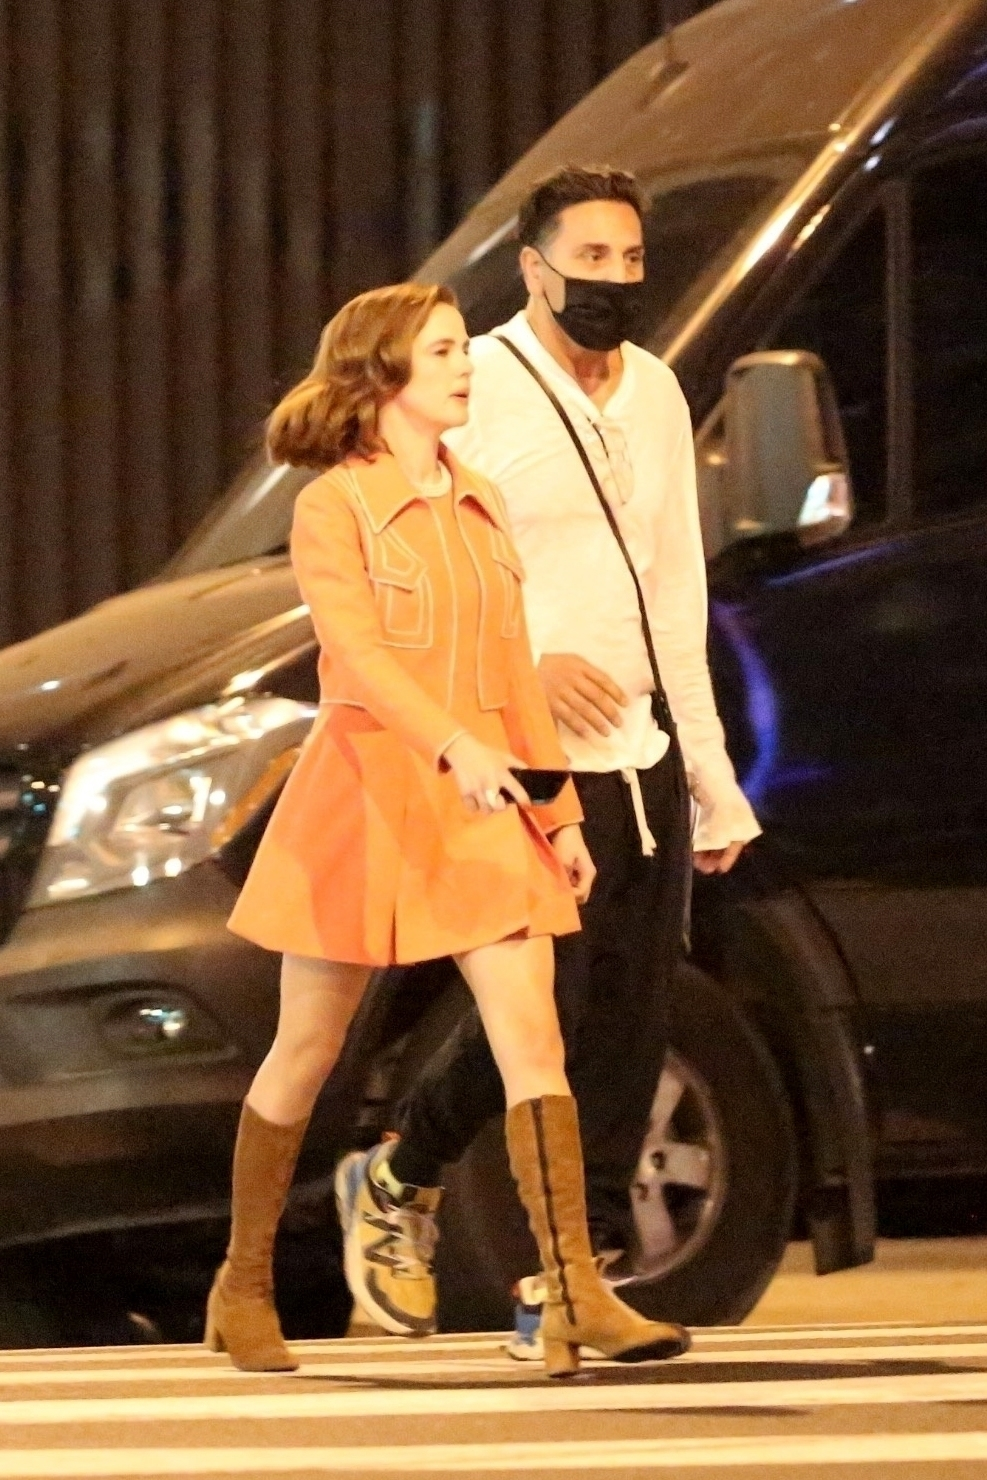 Zoey Deutch 2020 : Zoey Deutch – Makes a cameo for Justin Biebers latest music video in Los Angeles-10